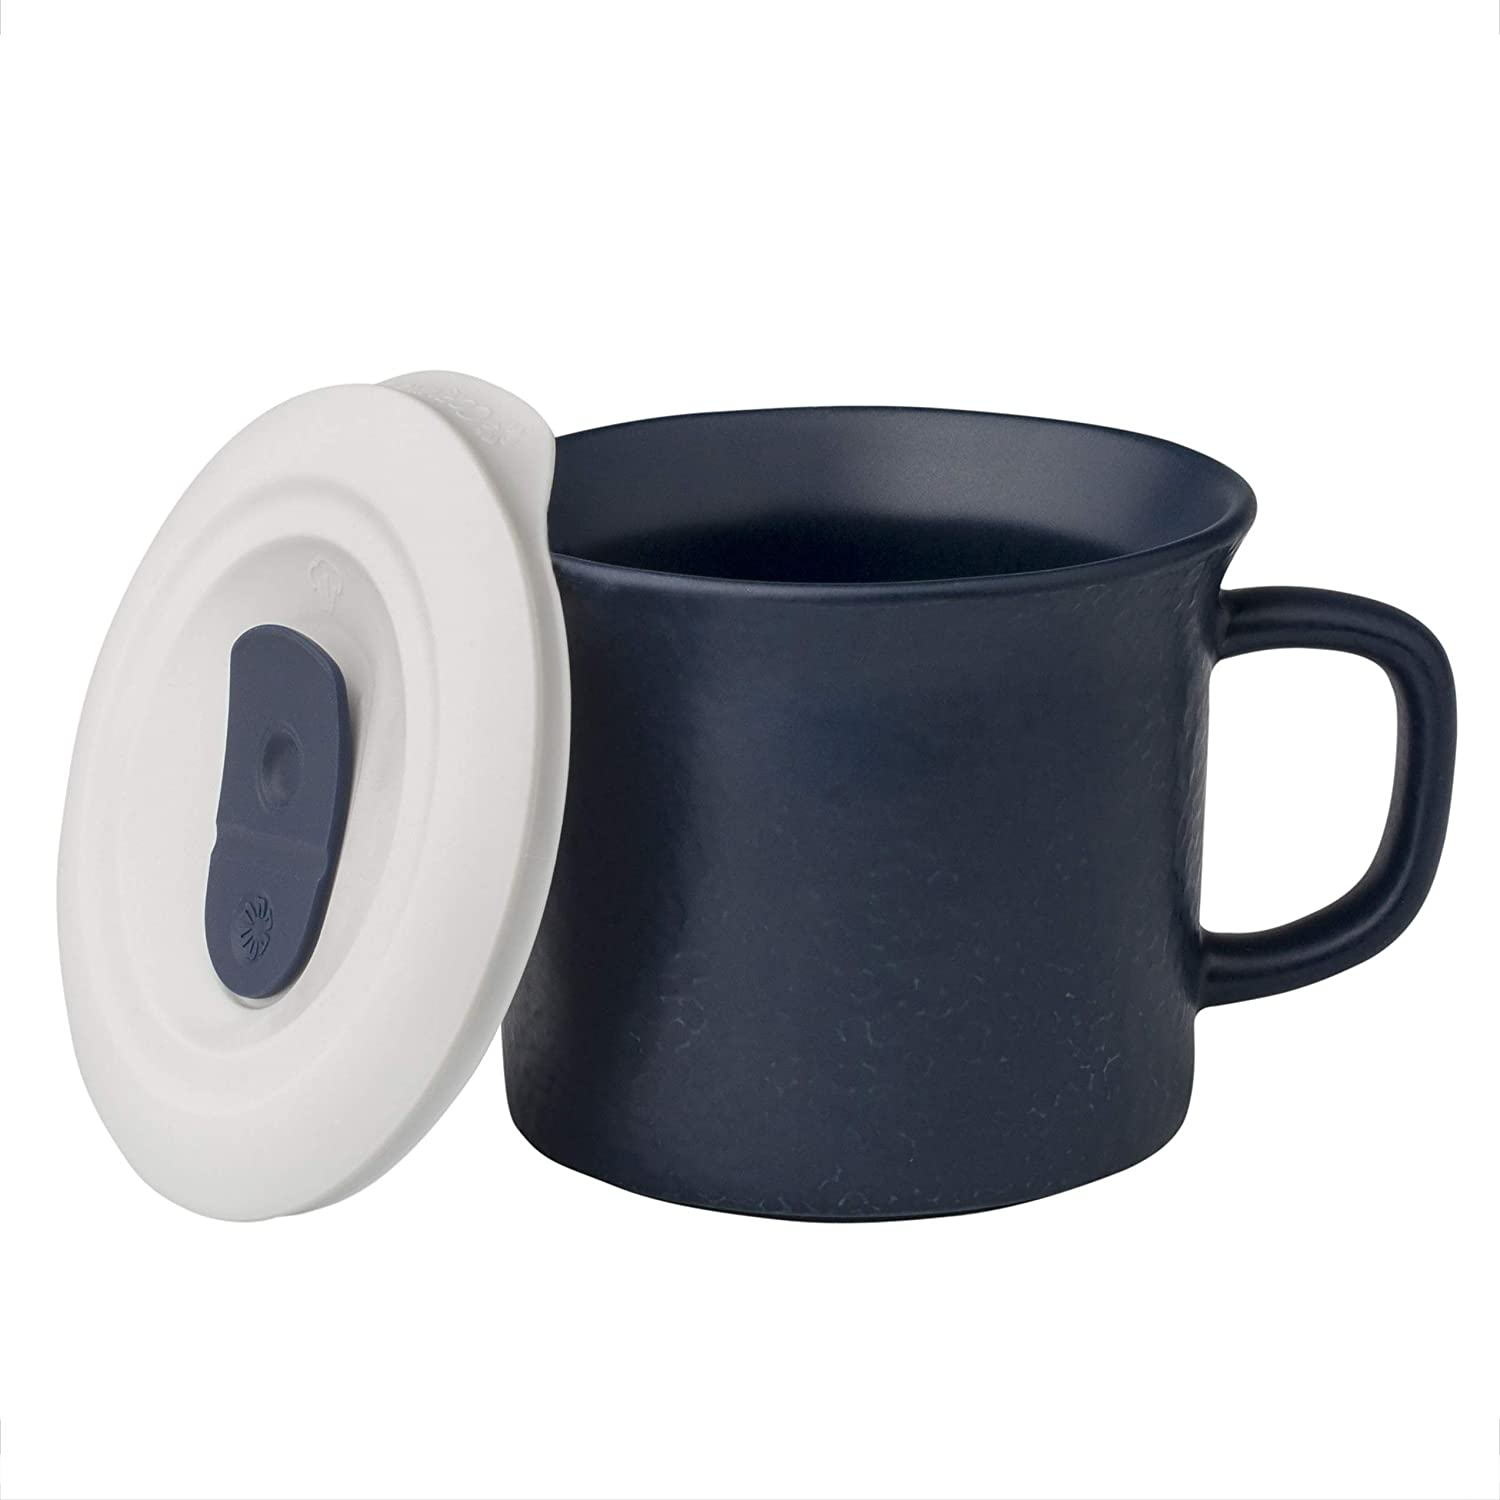 Corningware 20 Ounce Hammered Navy Blue Meal Mug With Vented Lid